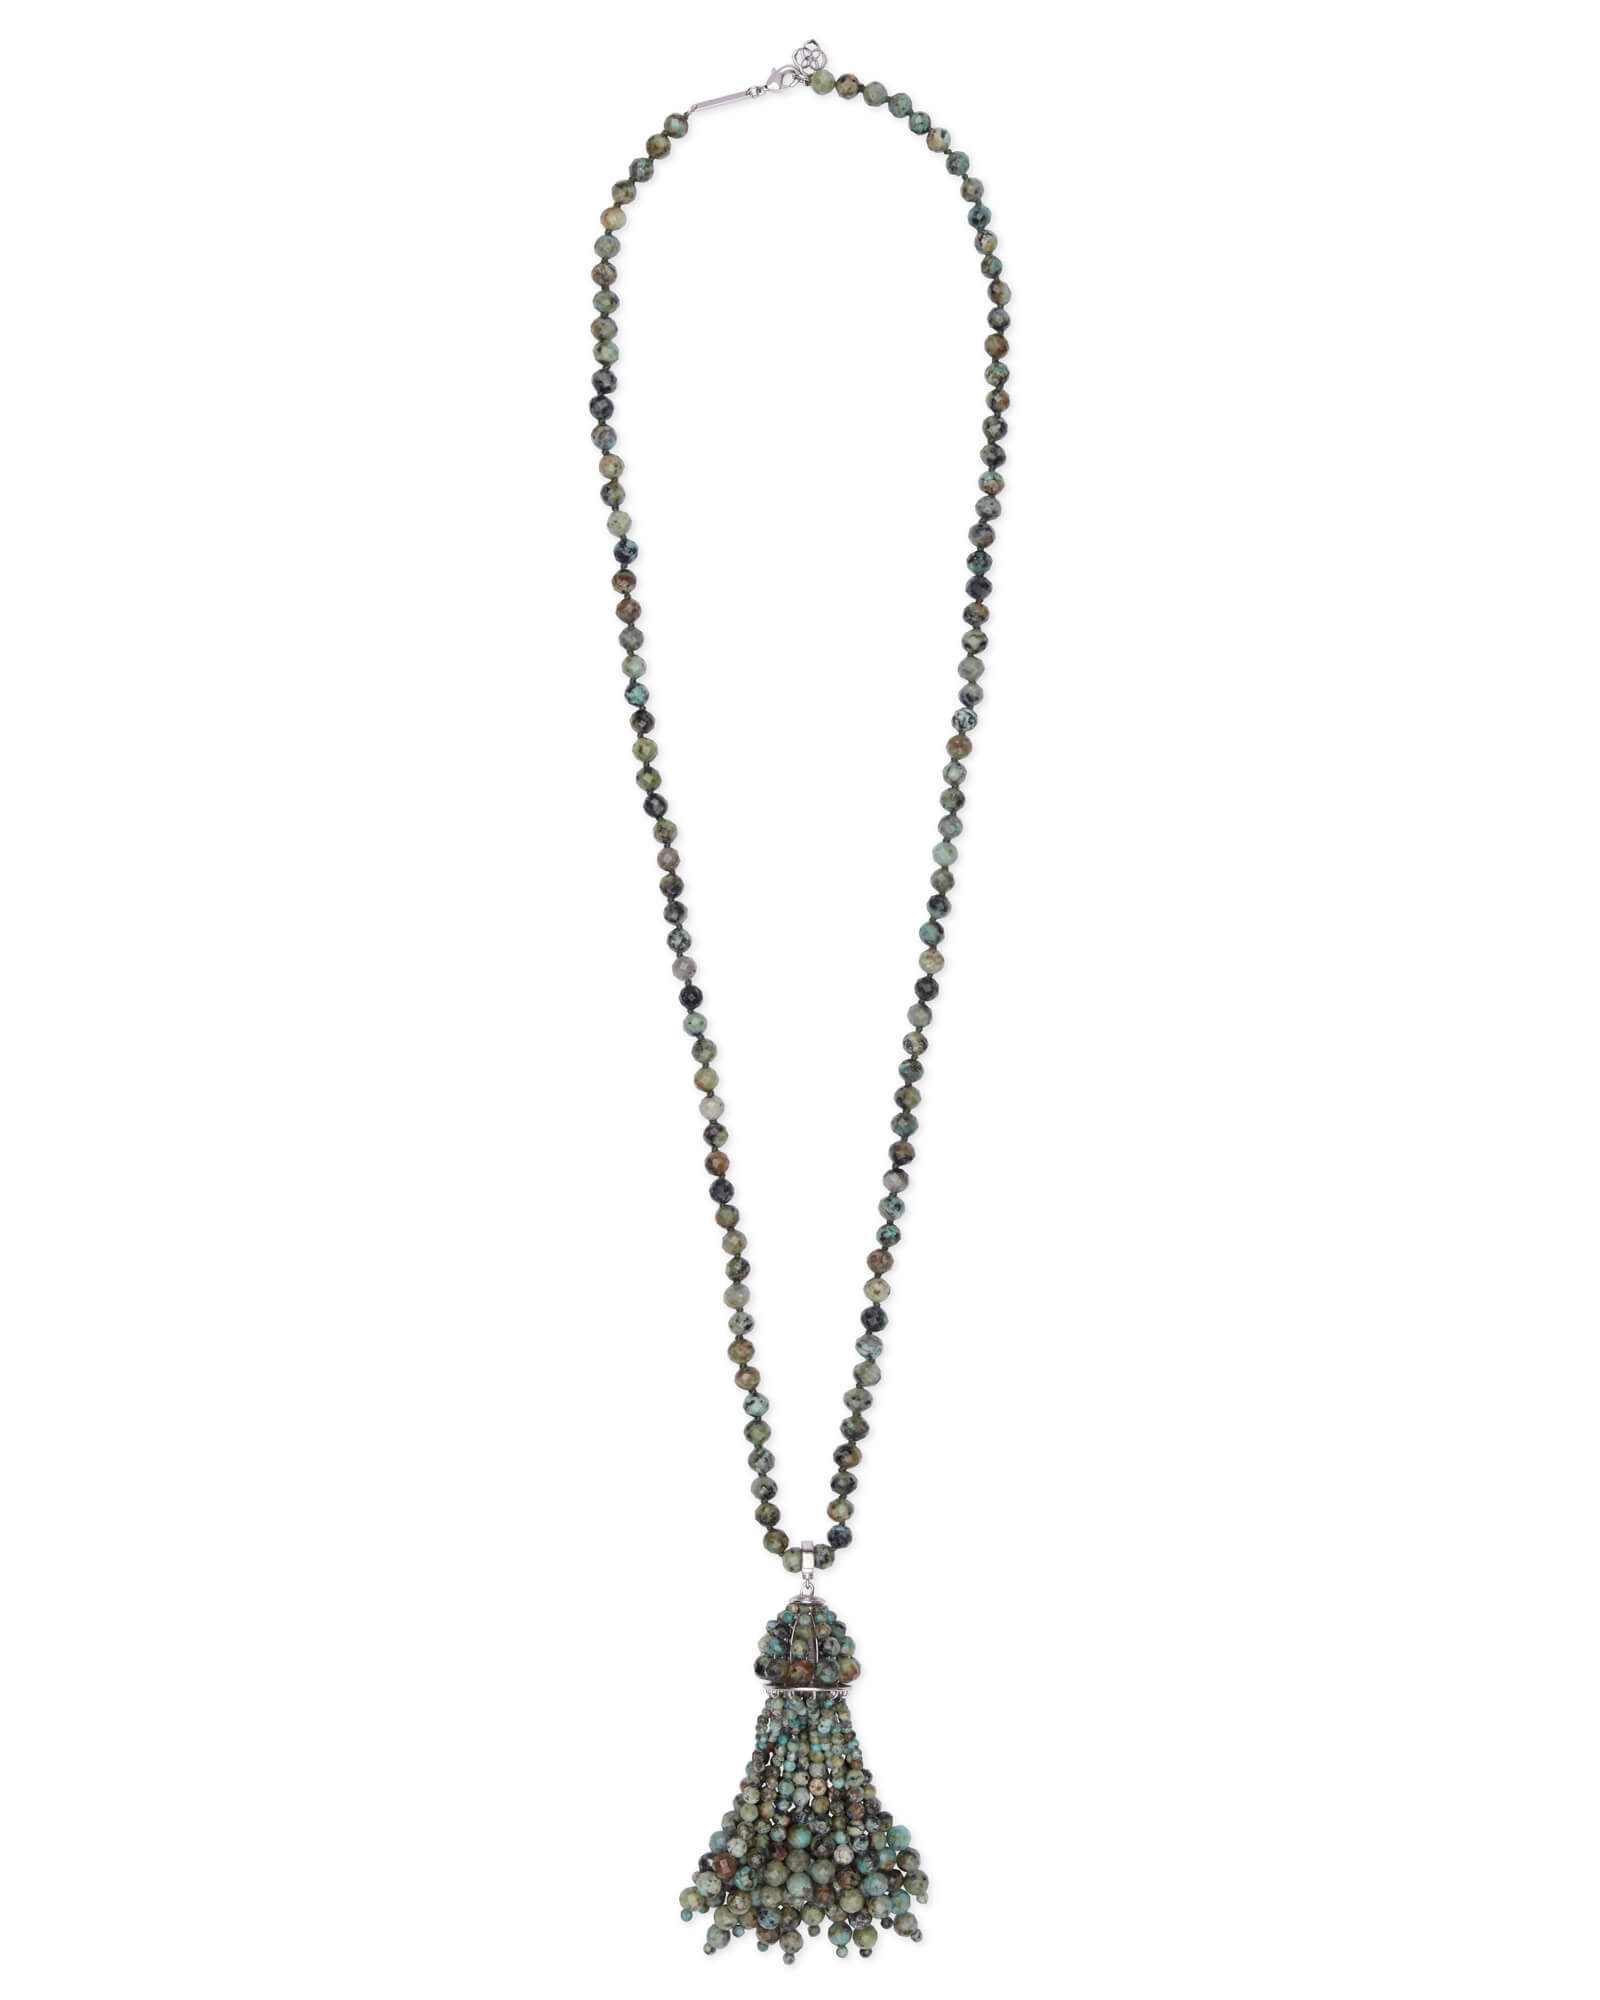 Sylvia Silver Long Pendant Necklace in African Turqouise